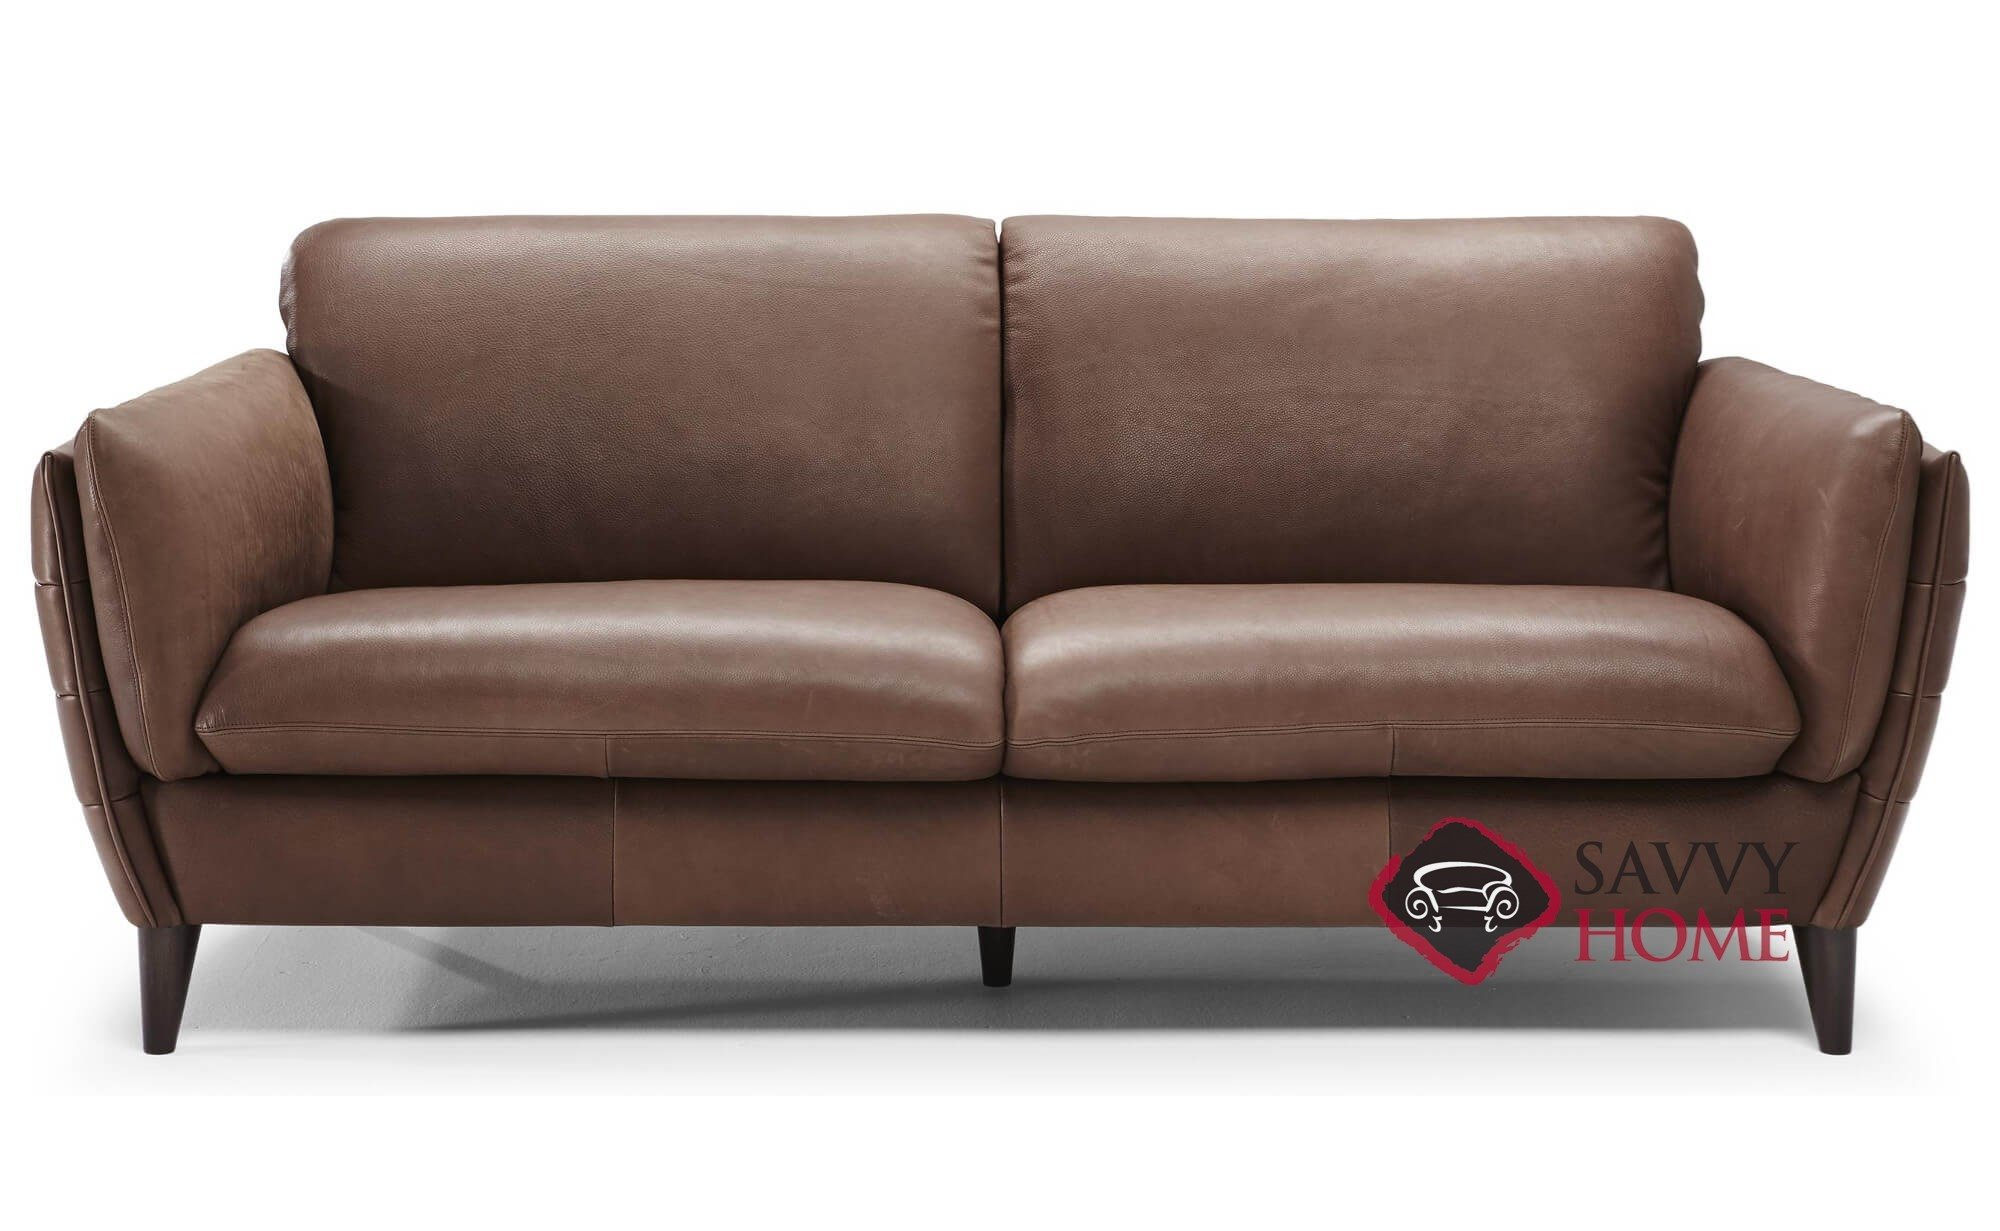 Limentra (B908) Leather Stationary Sofa by Natuzzi is Fully ...